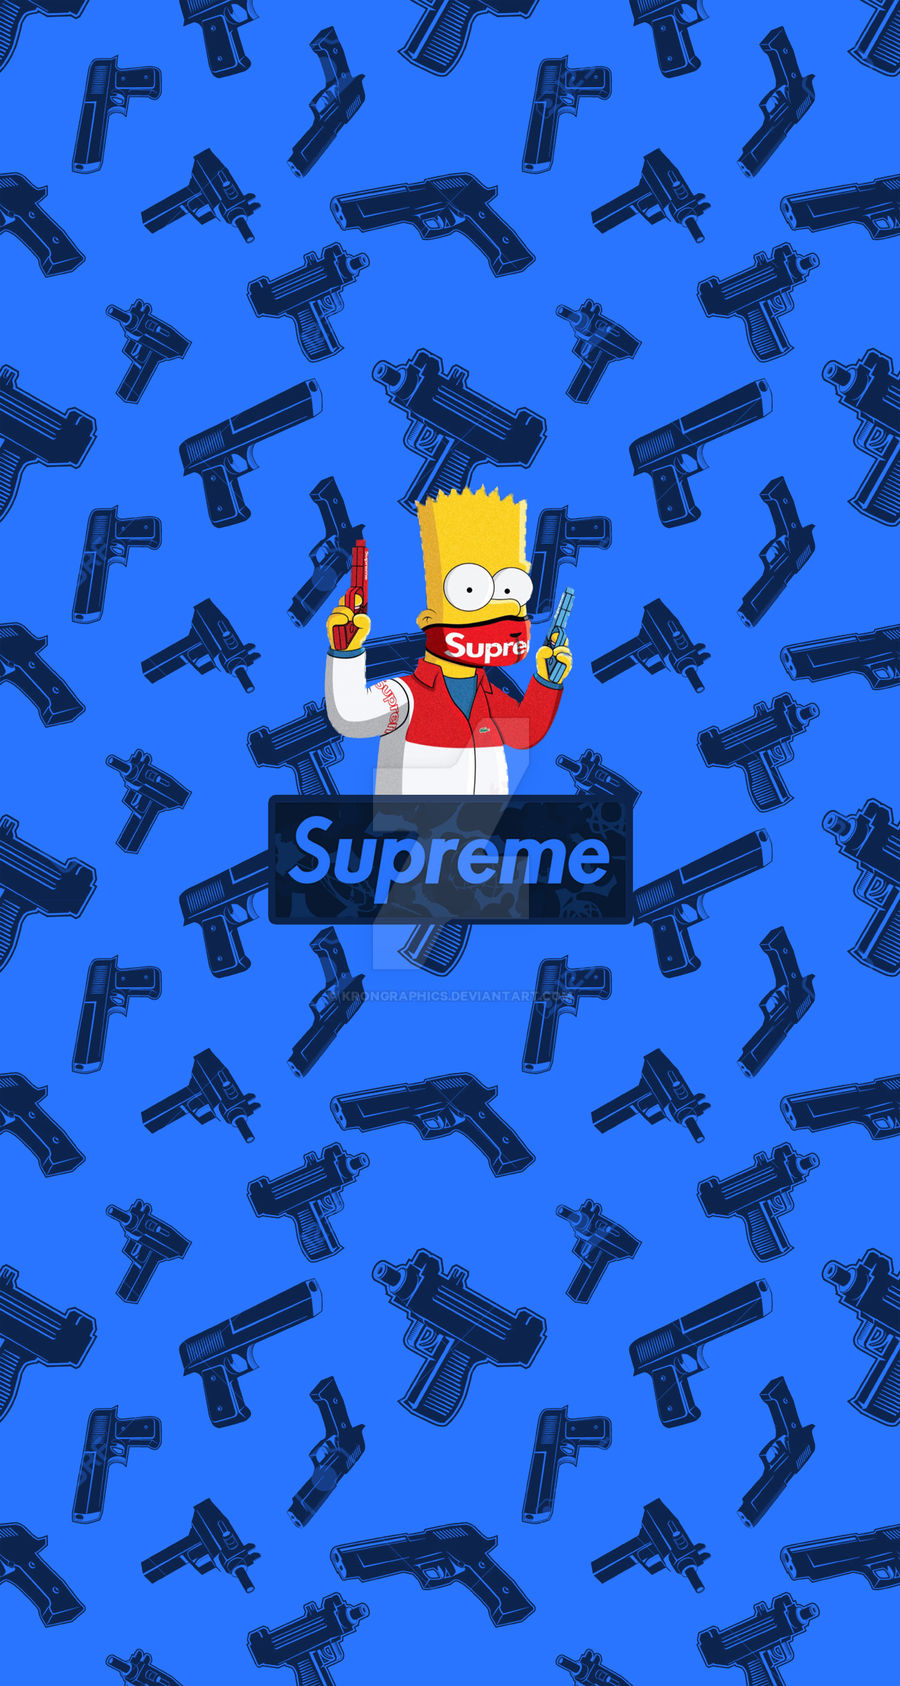 Supreme X Simpsons Iphone Wallpaper By Krongraphics On